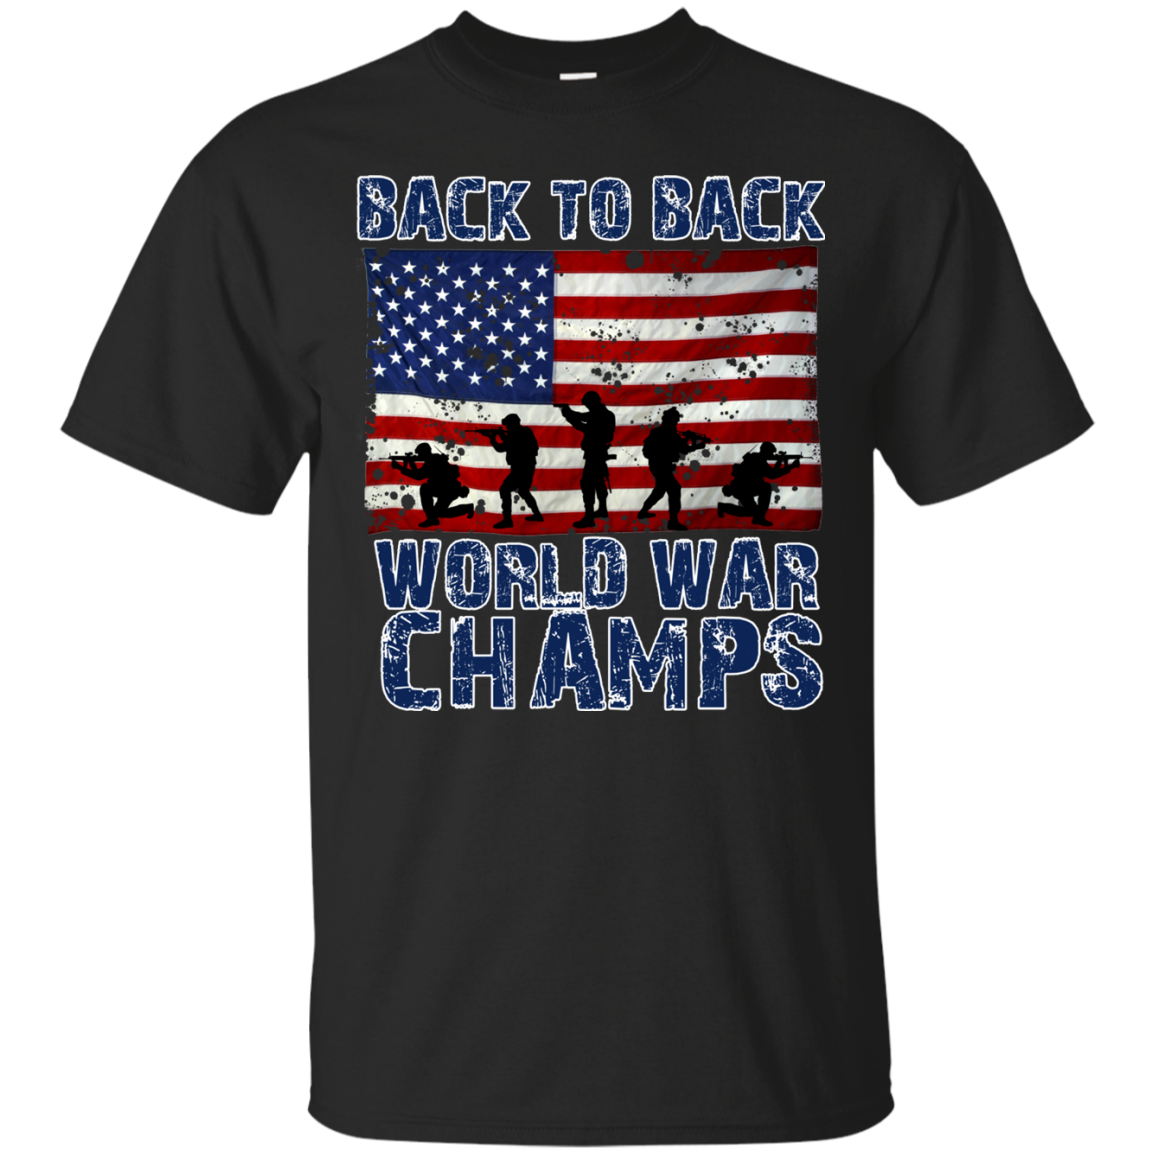 32960535a56 Back To Back World War Champs Shirt